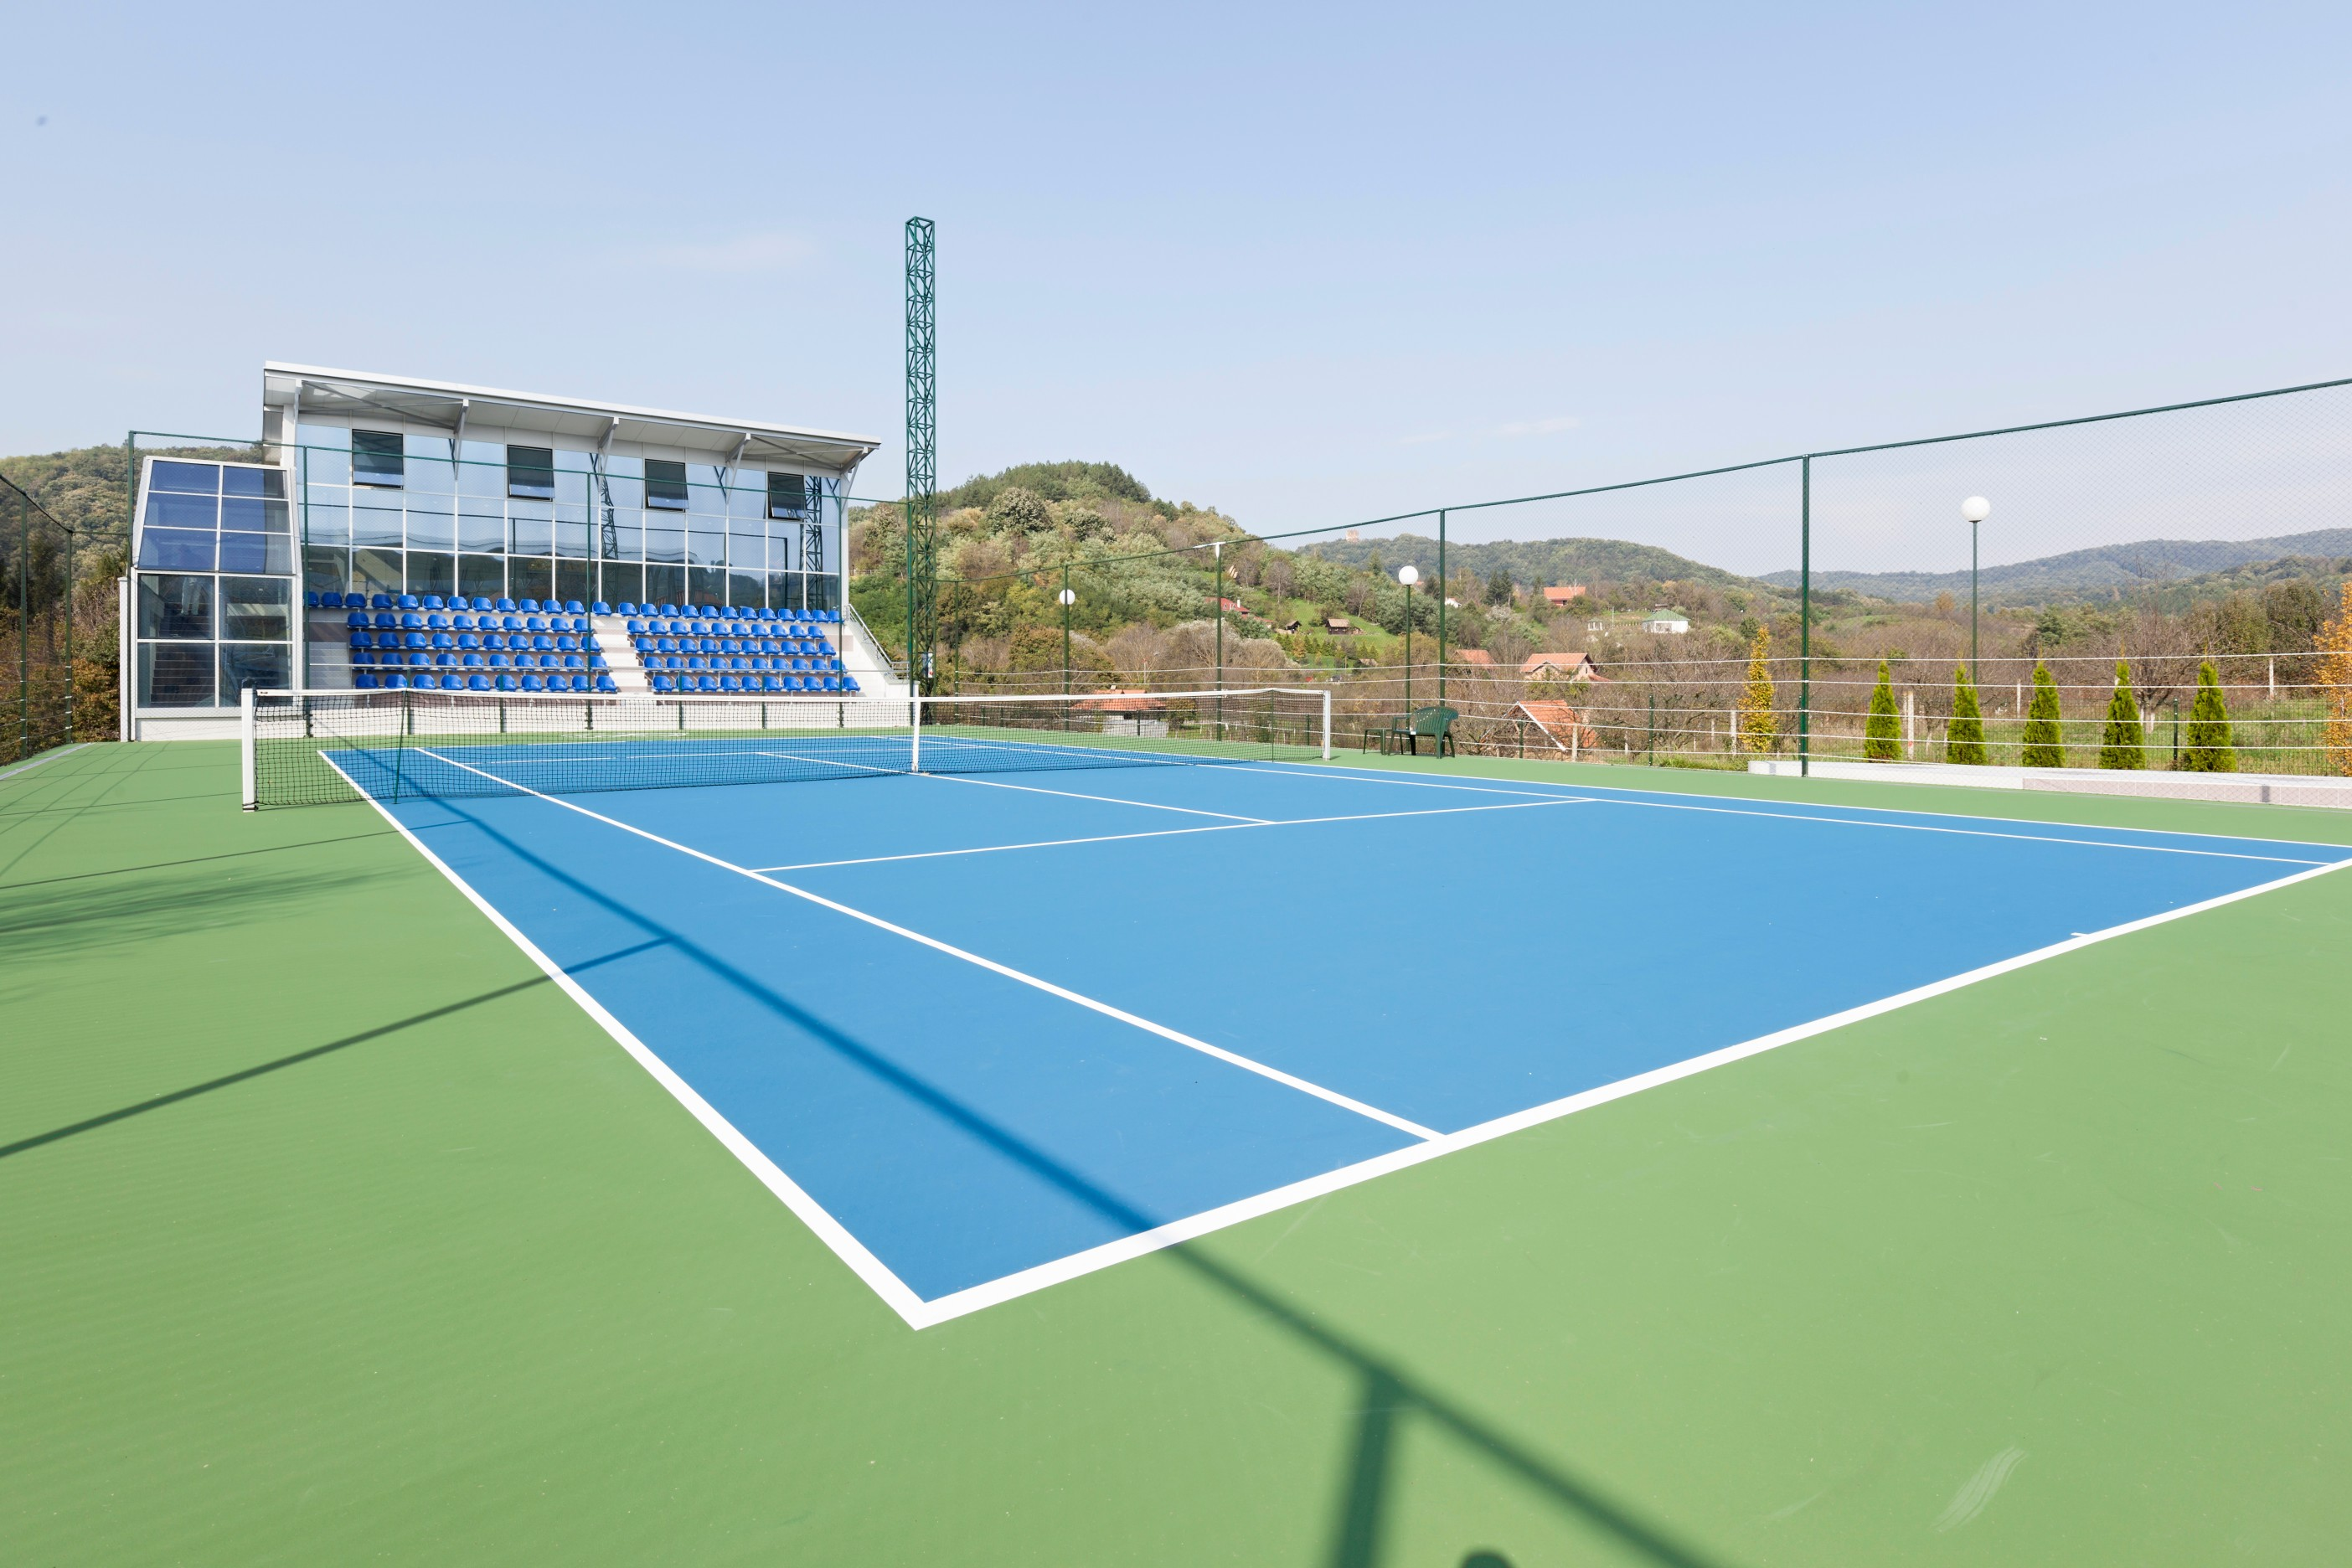 Specialists in porous and non-porous acrylic tennis court surfaces